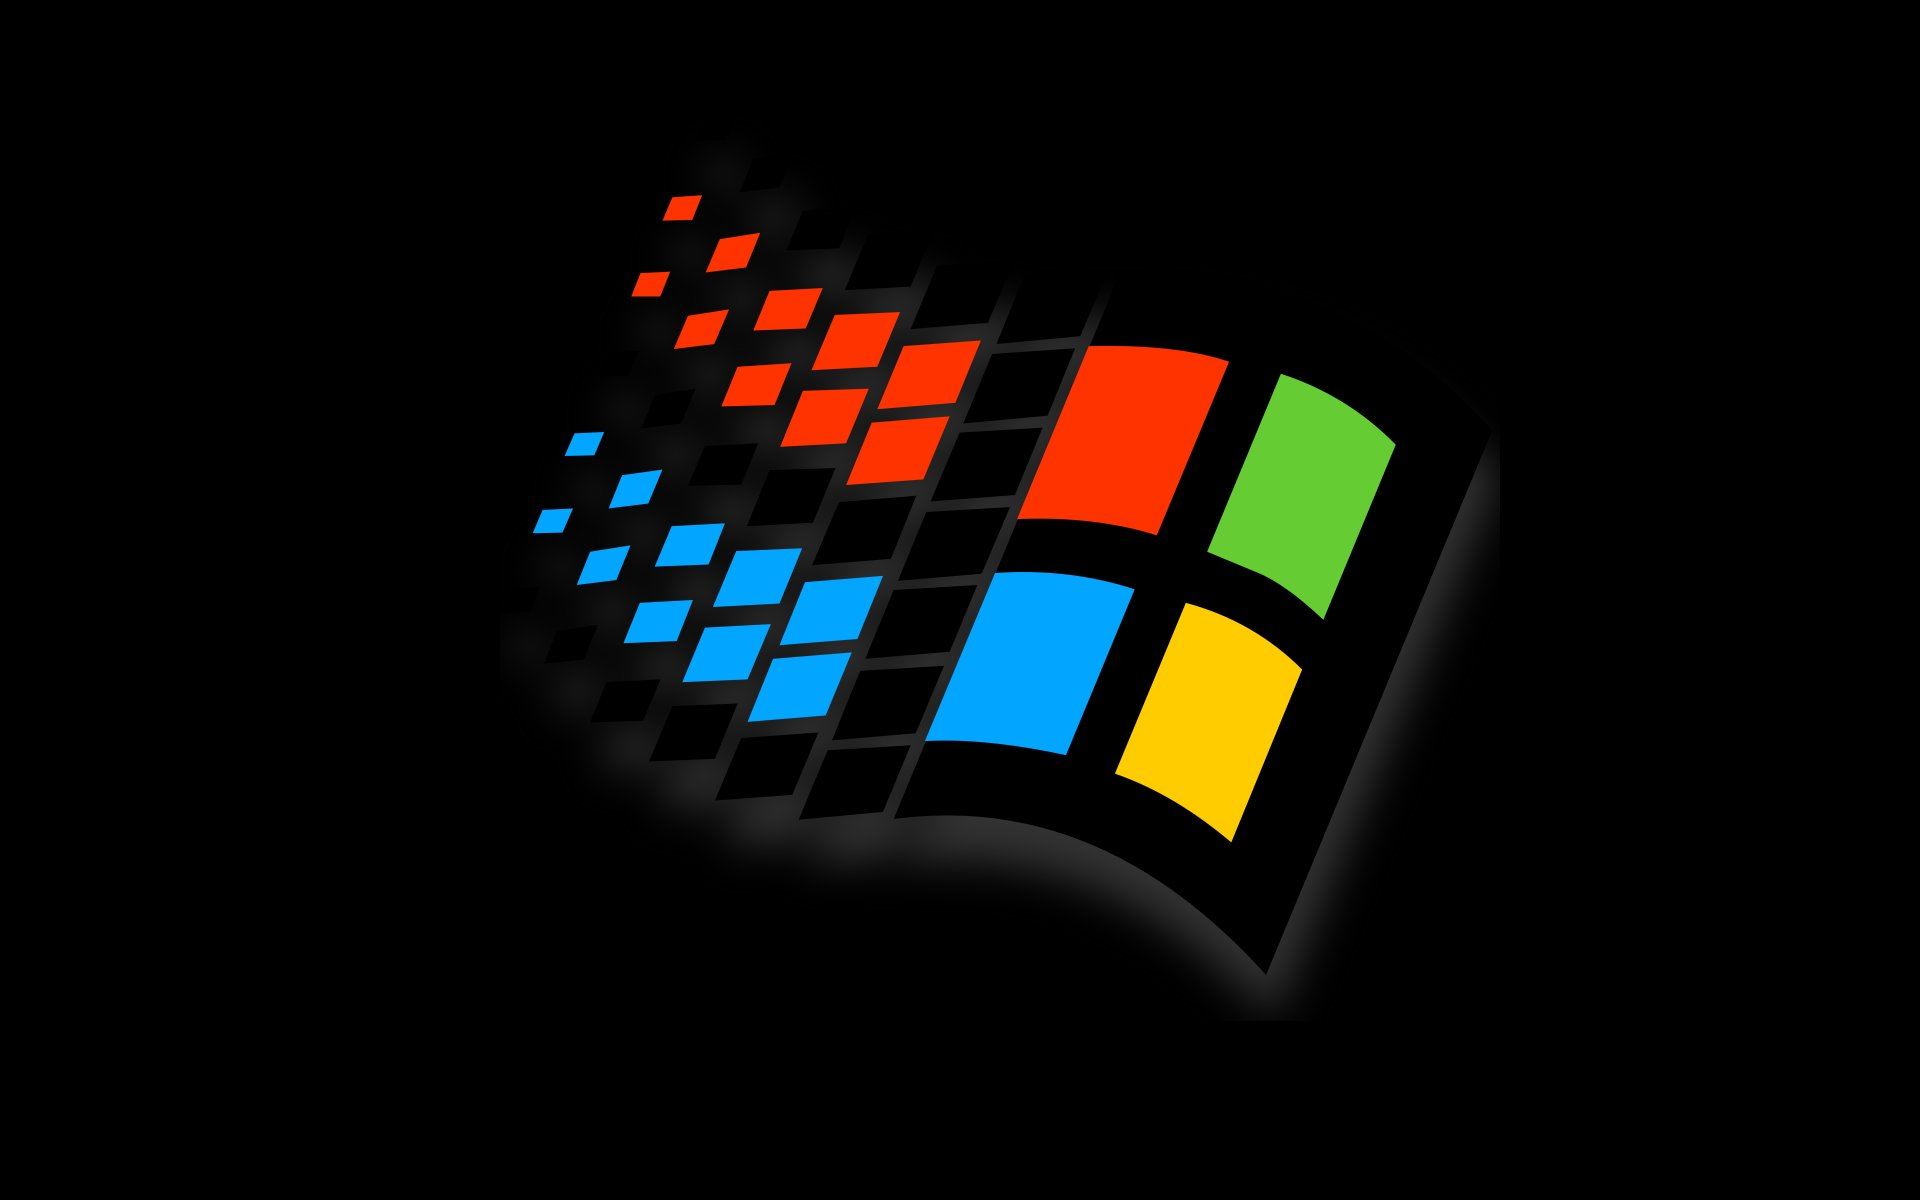 Windows 98 Wallpaper Technology News and Product Reviews 1920x1200